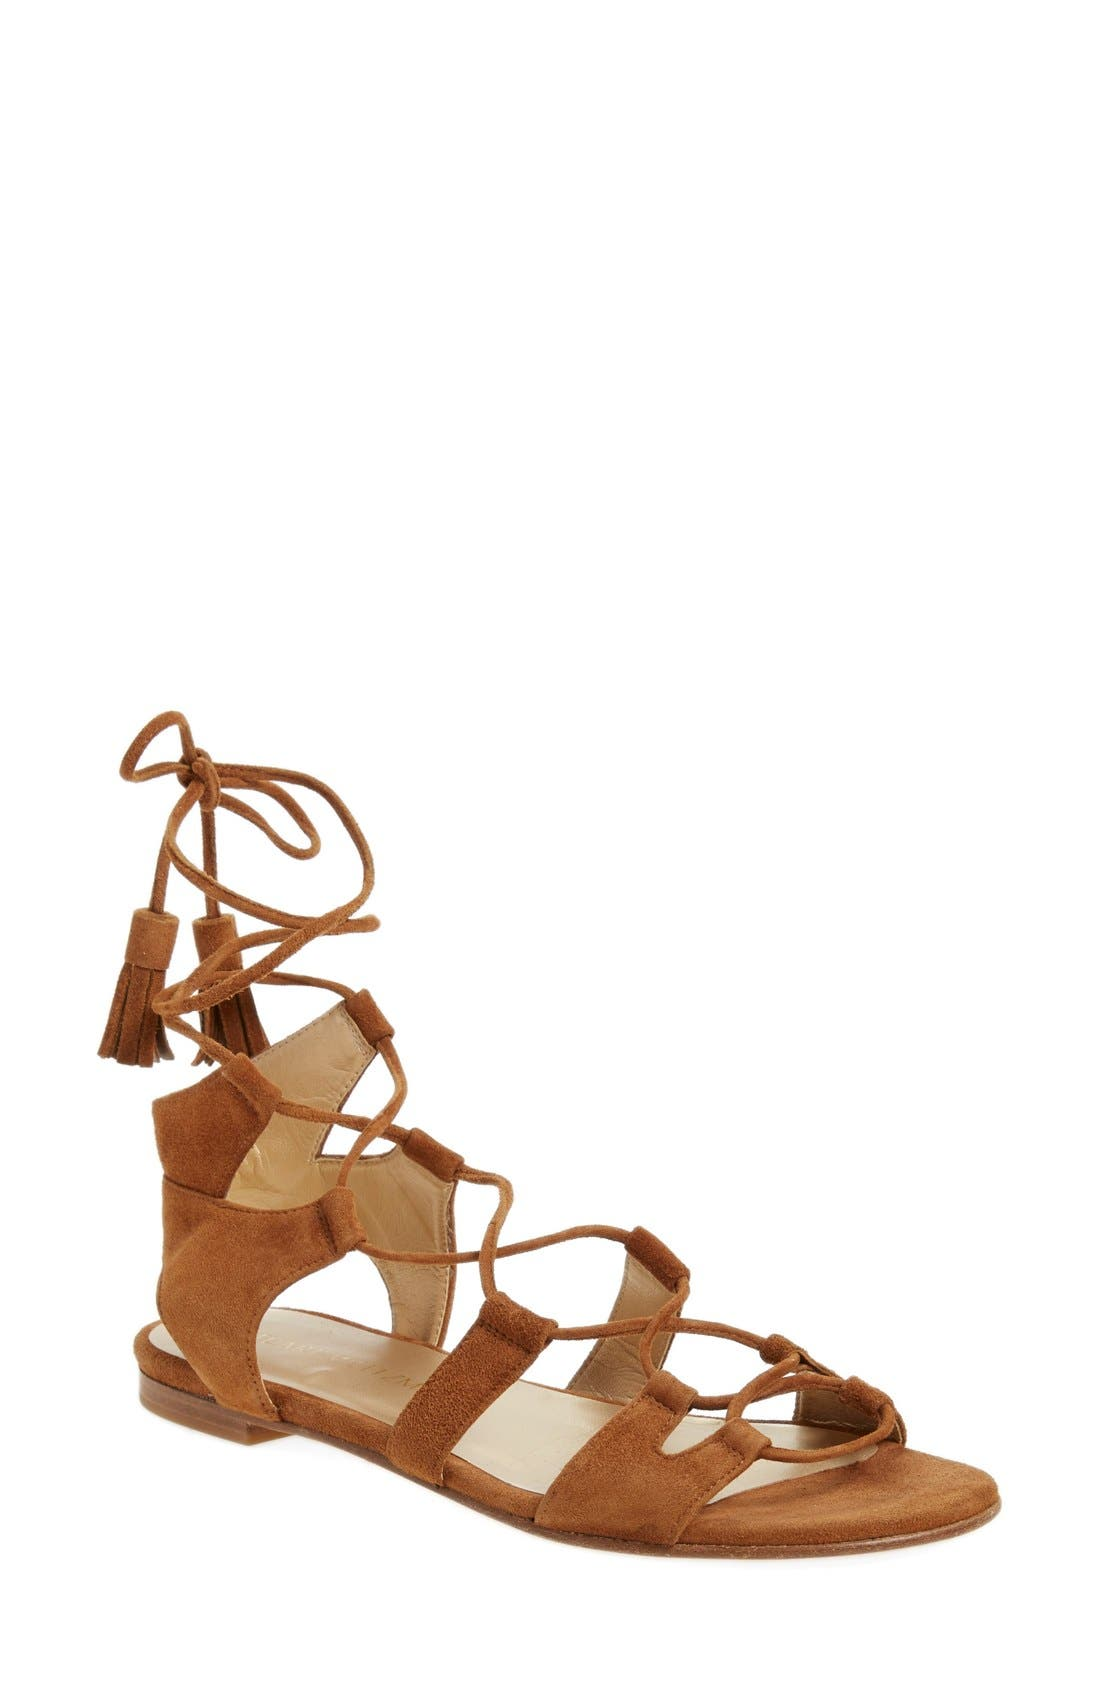 'Romanflat' Ghillie Sandal,                         Main,                         color, Amaretto Suede